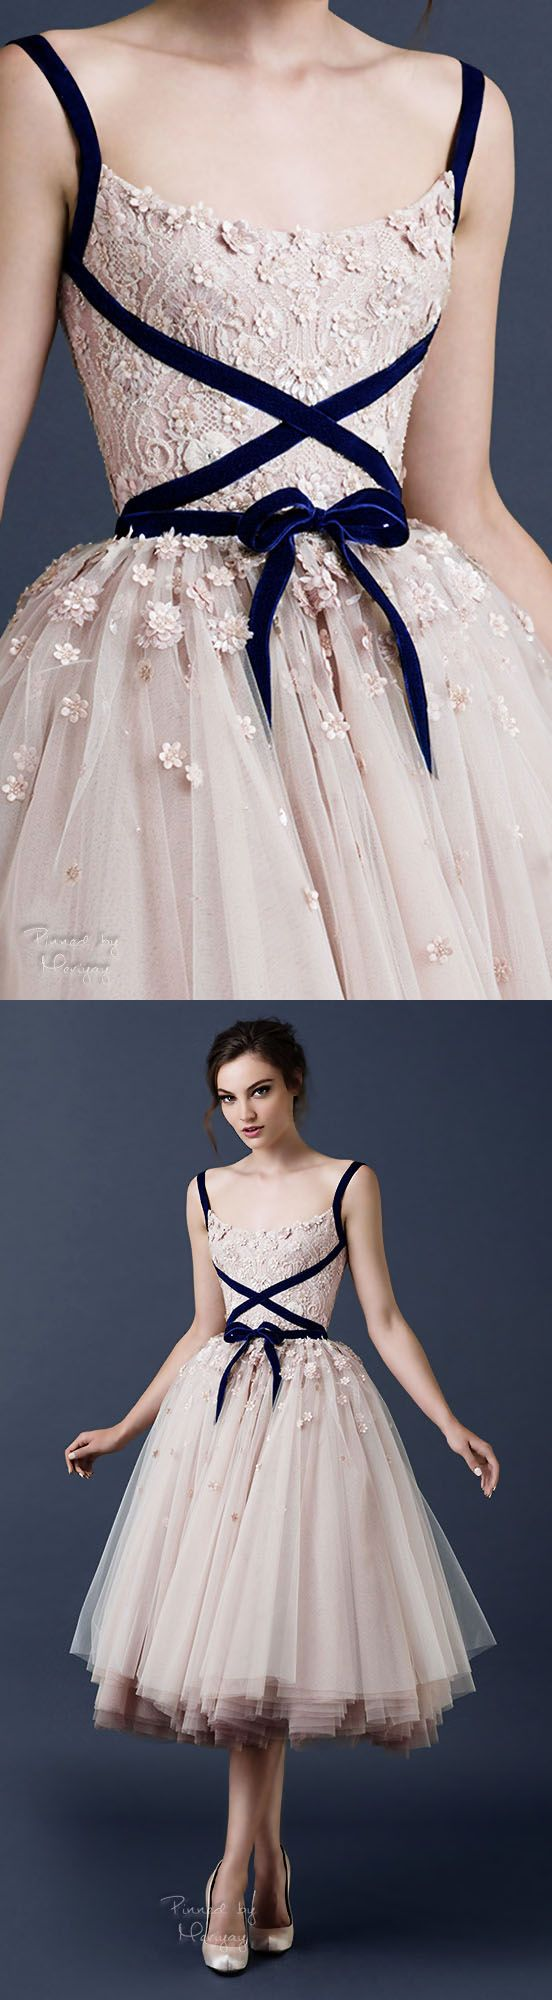 Blush bridesmaids dress | blush wedding | Paolo Sebastian 2015